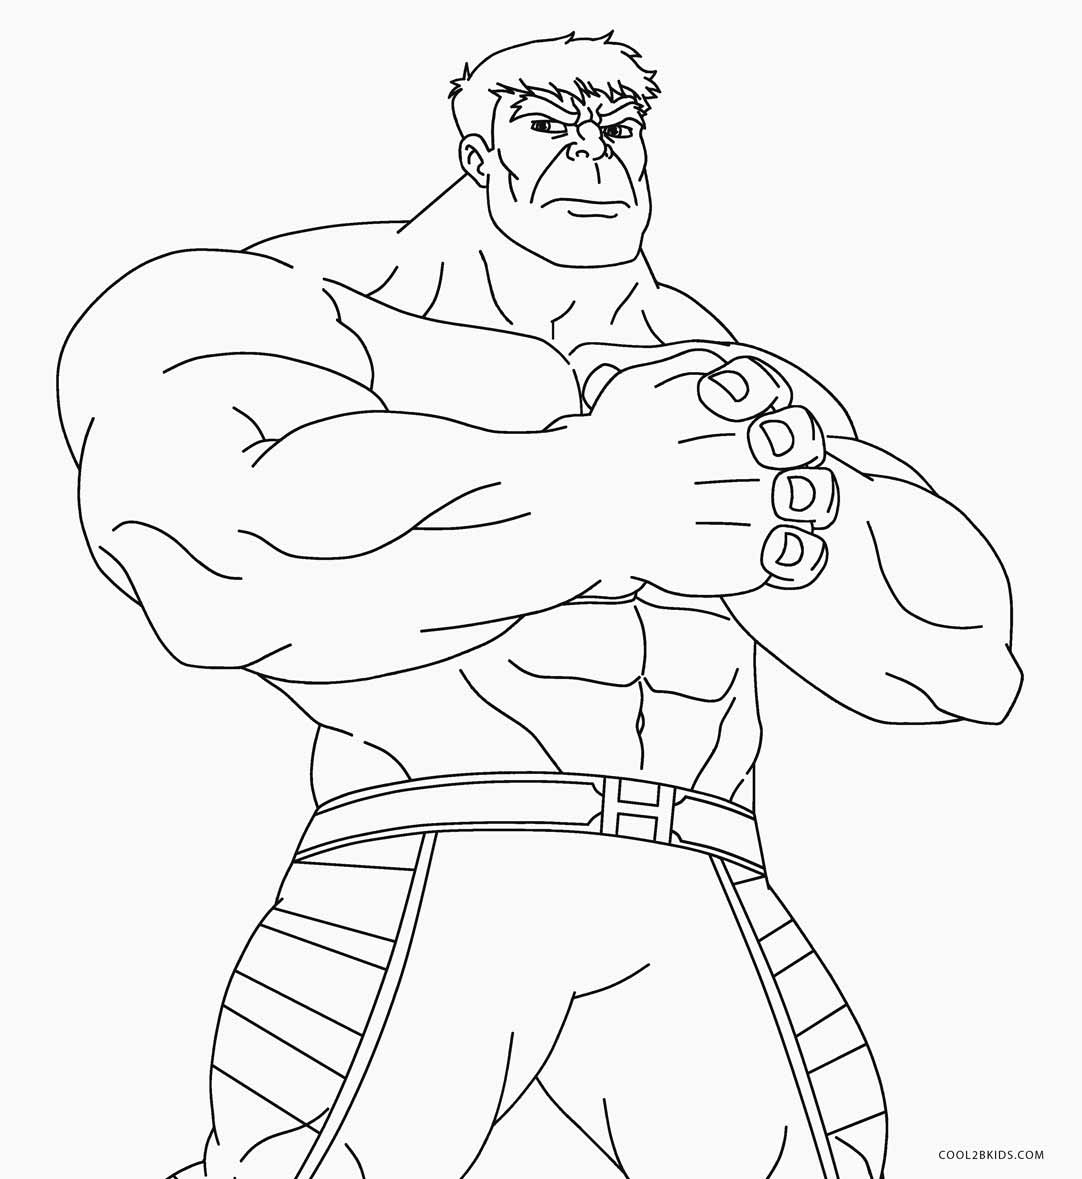 red hulk coloring pages pictures of red hulk coloring home hulk red pages coloring